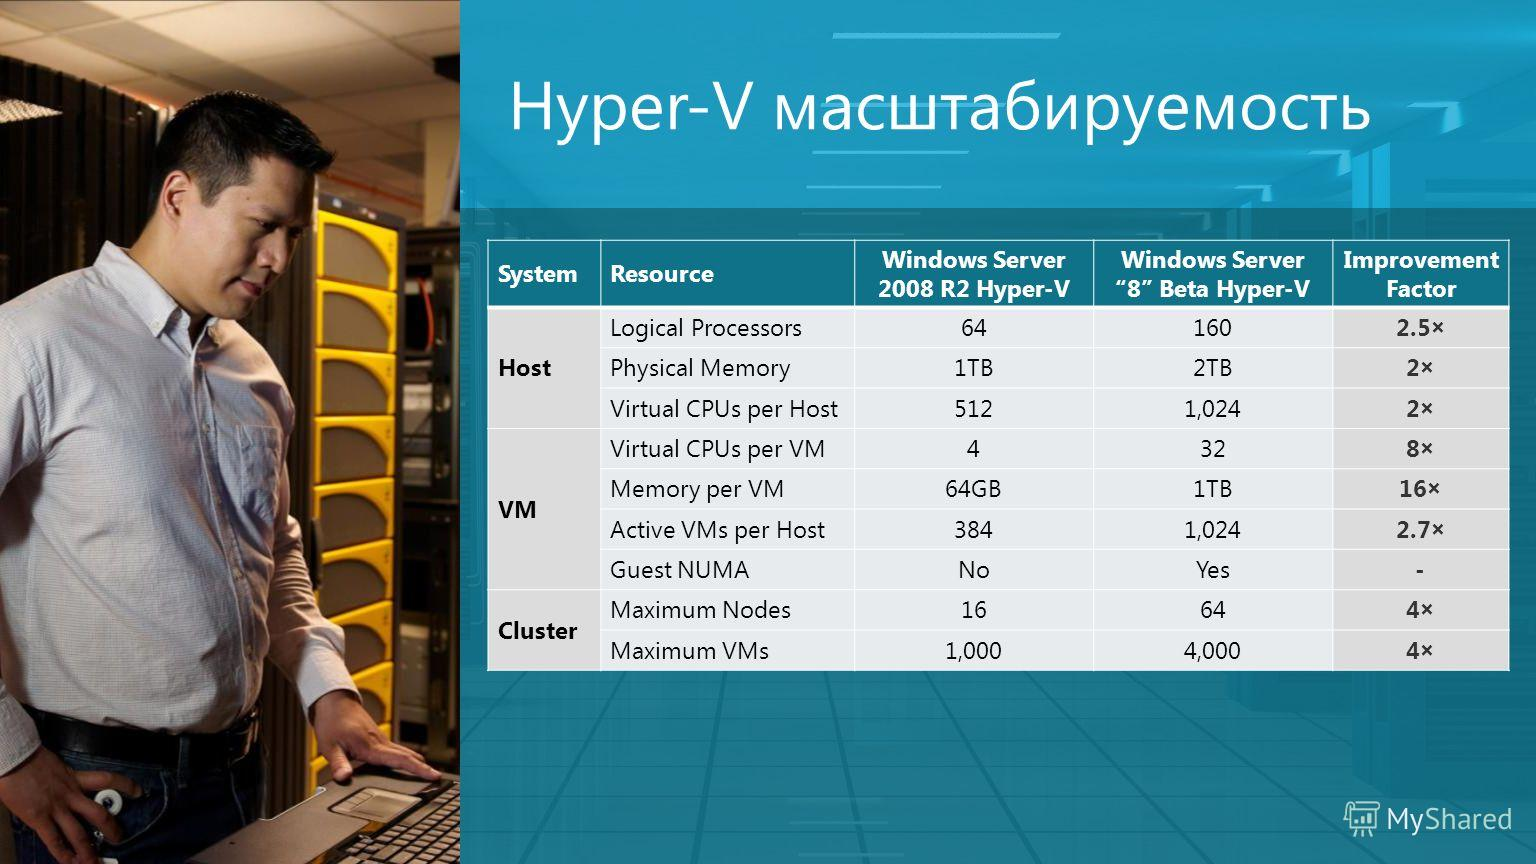 5 Hyper-V масштабируемость SystemResource Windows Server 2008 R2 Hyper-V Windows Server 8 Beta Hyper-V Improvement Factor Host Logical Processors641602.5× Physical Memory1TB2TB2× Virtual CPUs per Host5121,0242× VM Virtual CPUs per VM4328× Memory per